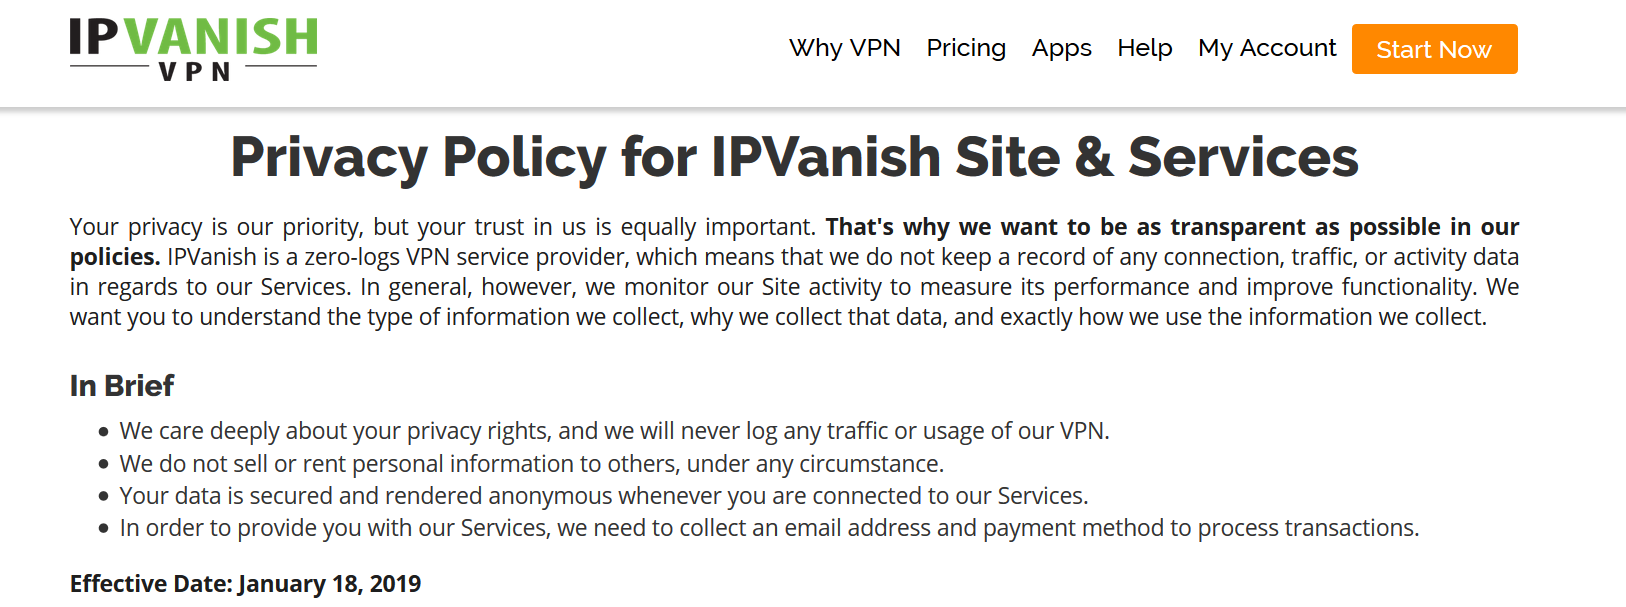 IPVanish VPN Privacy Policy